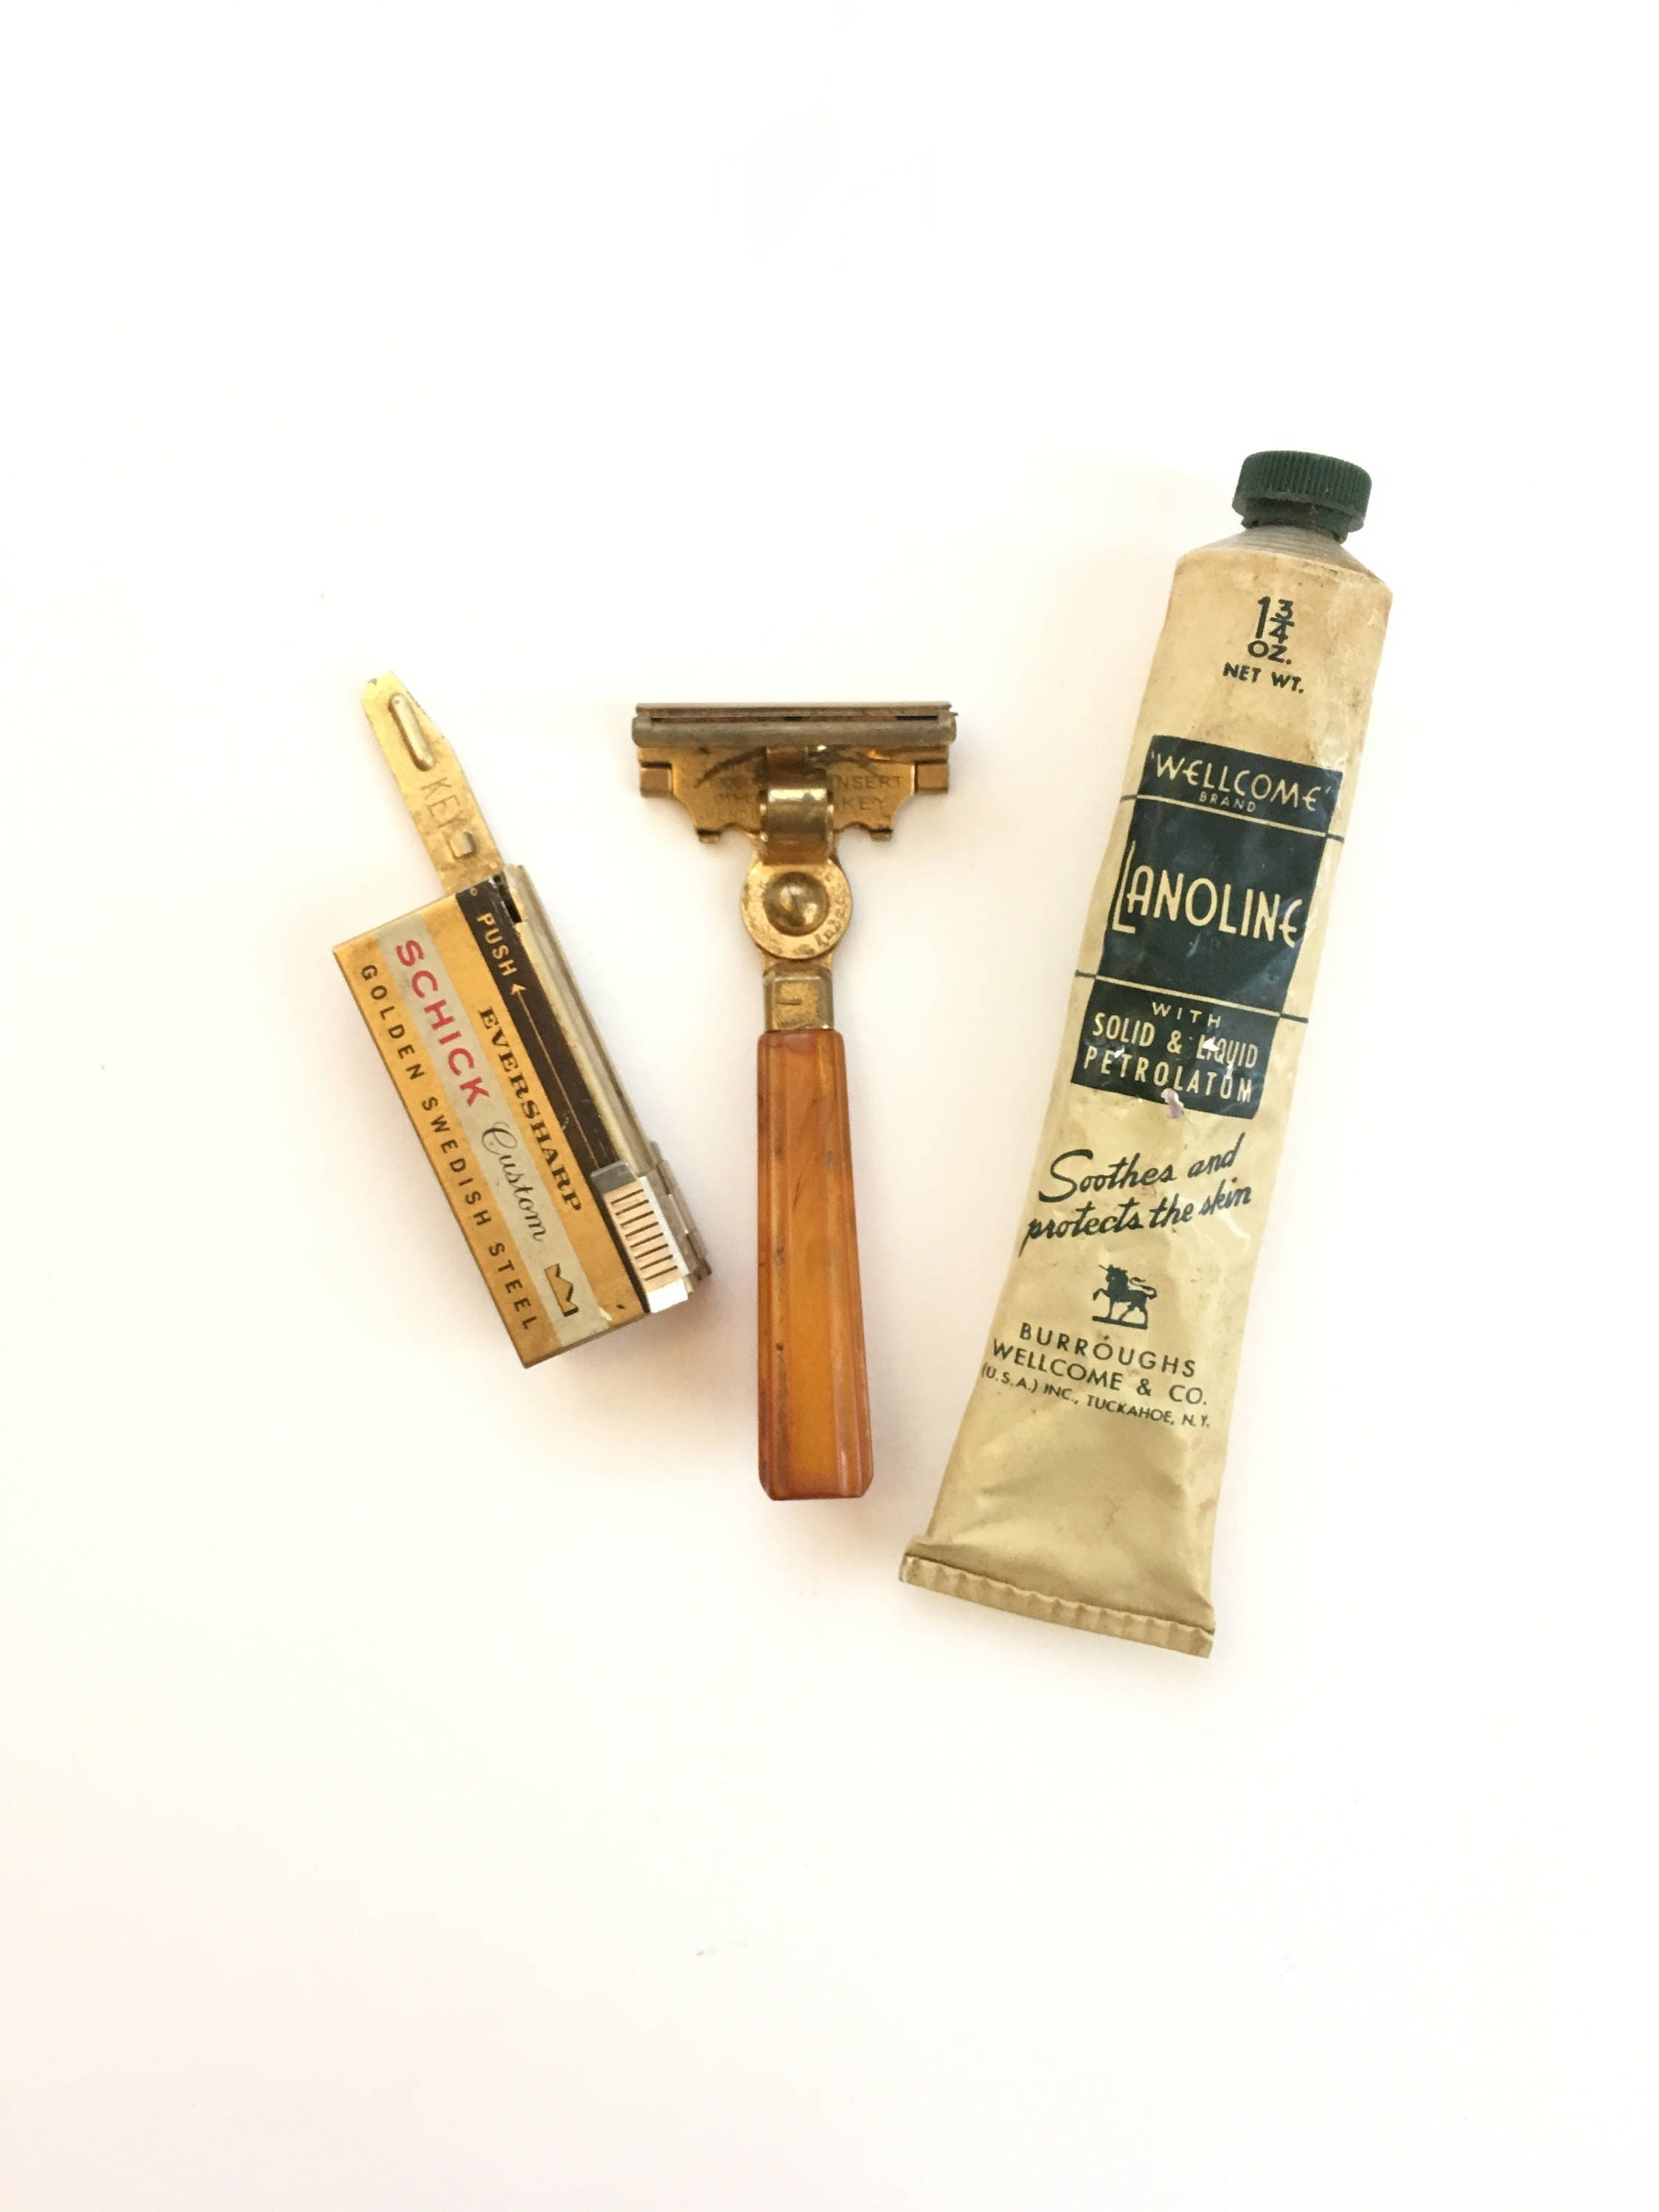 Vintage Schick Injector Razor Butterscotch Swirl Bakelite Handle set with  blades and Vintage Lanoline Ointment 1950s